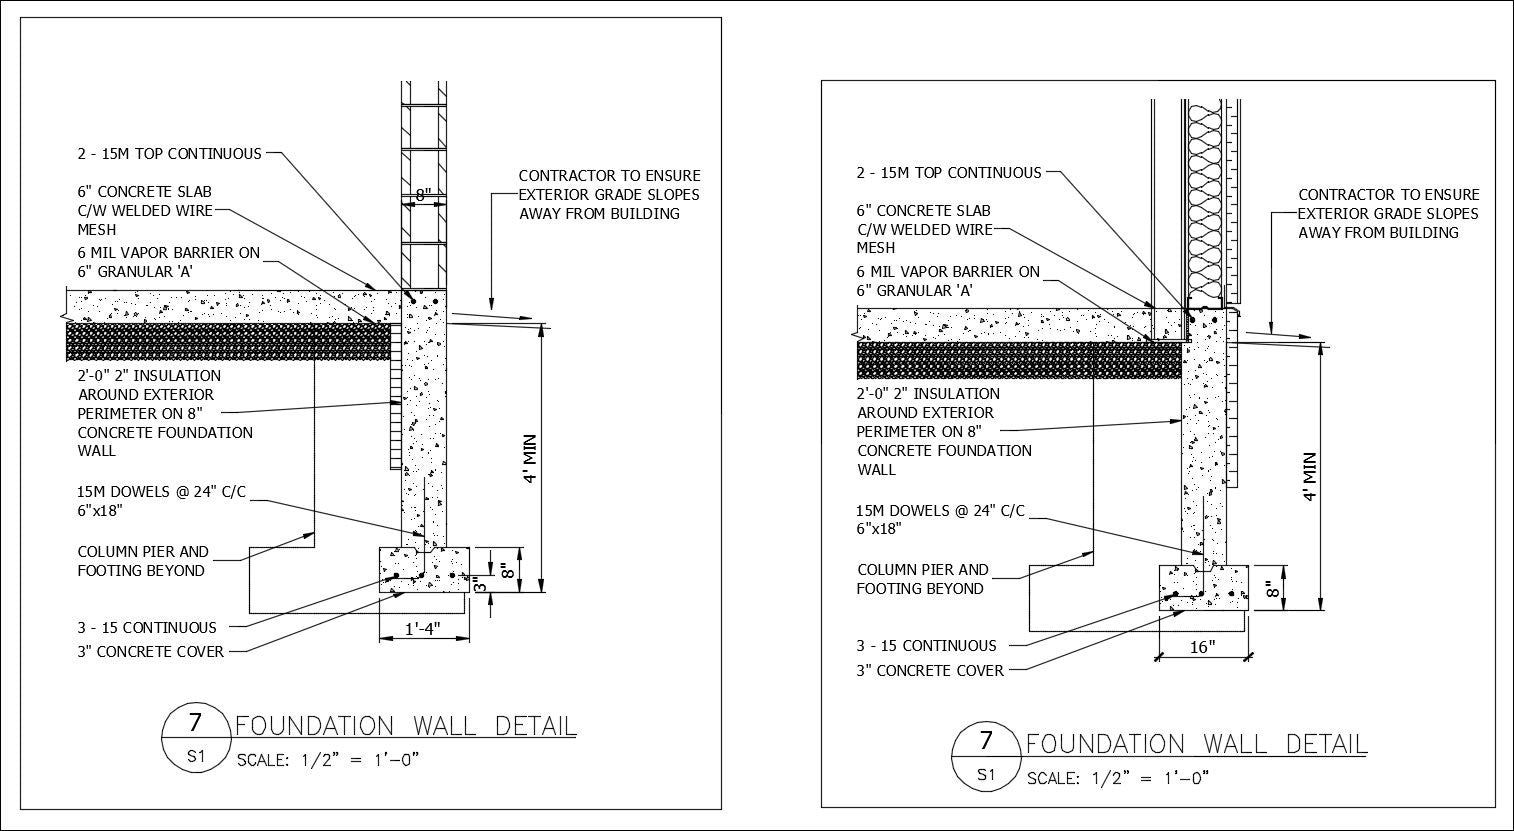 Free cad details foundation wall detail cad design free cad blocks drawings details for Foundations of interior design